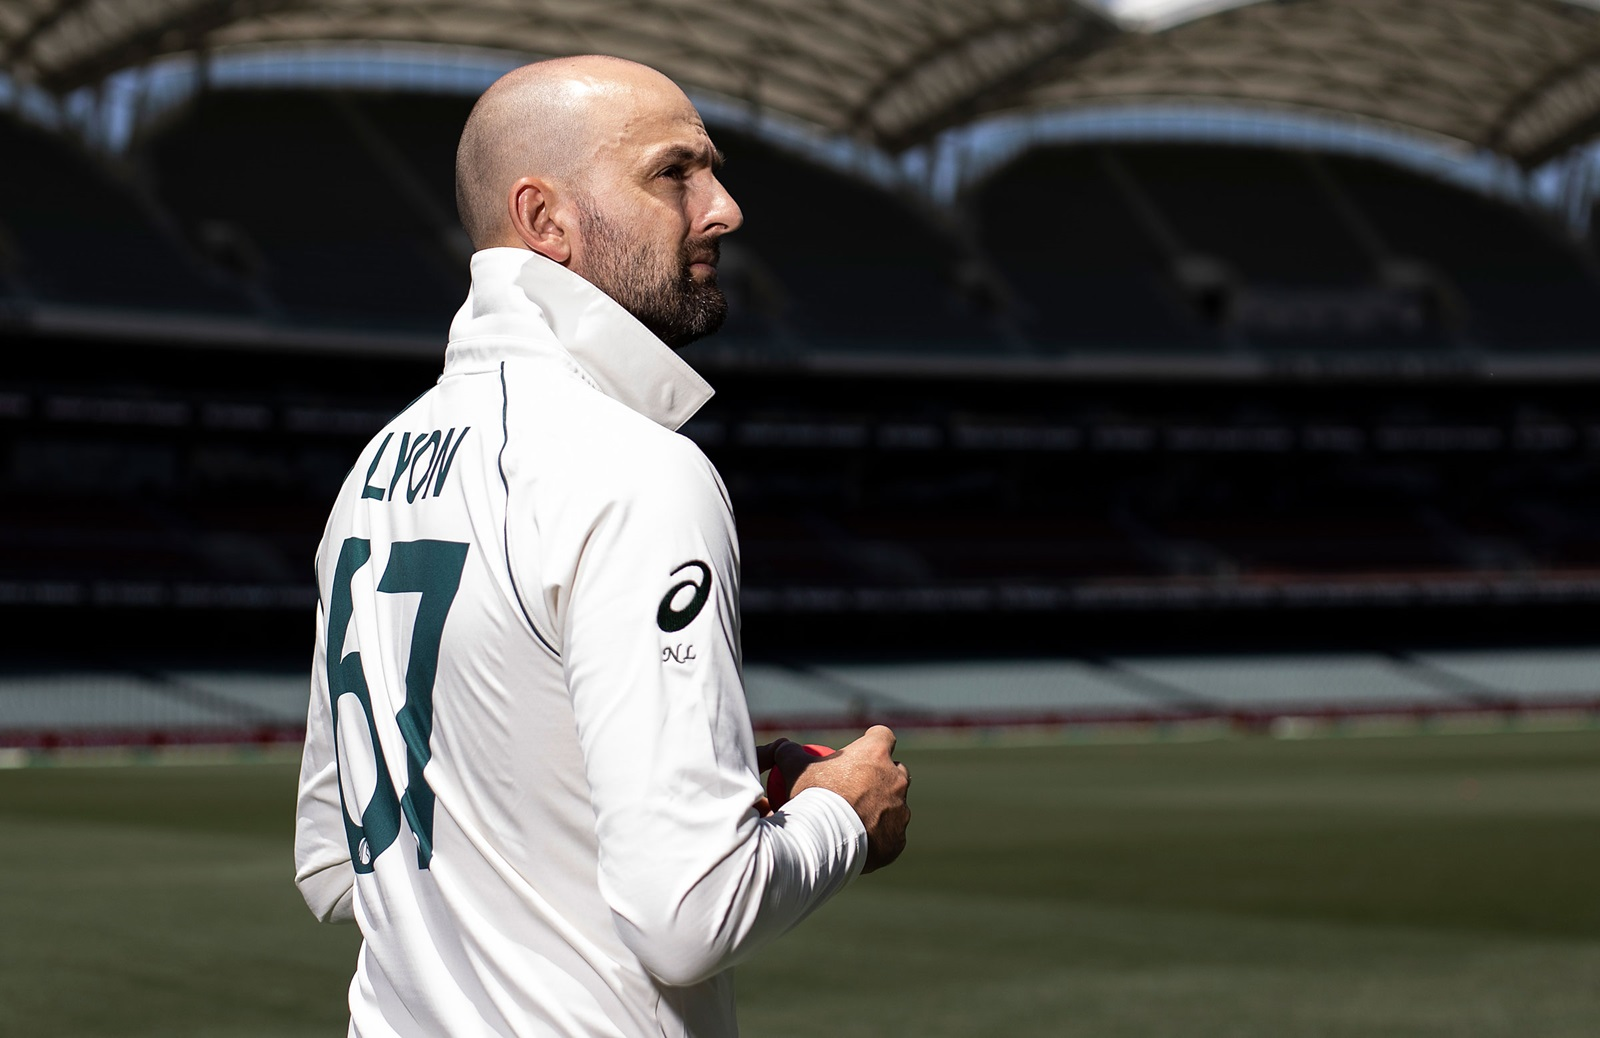 No end in sight for Lyon on eve of milestone Test – cricket.com.au